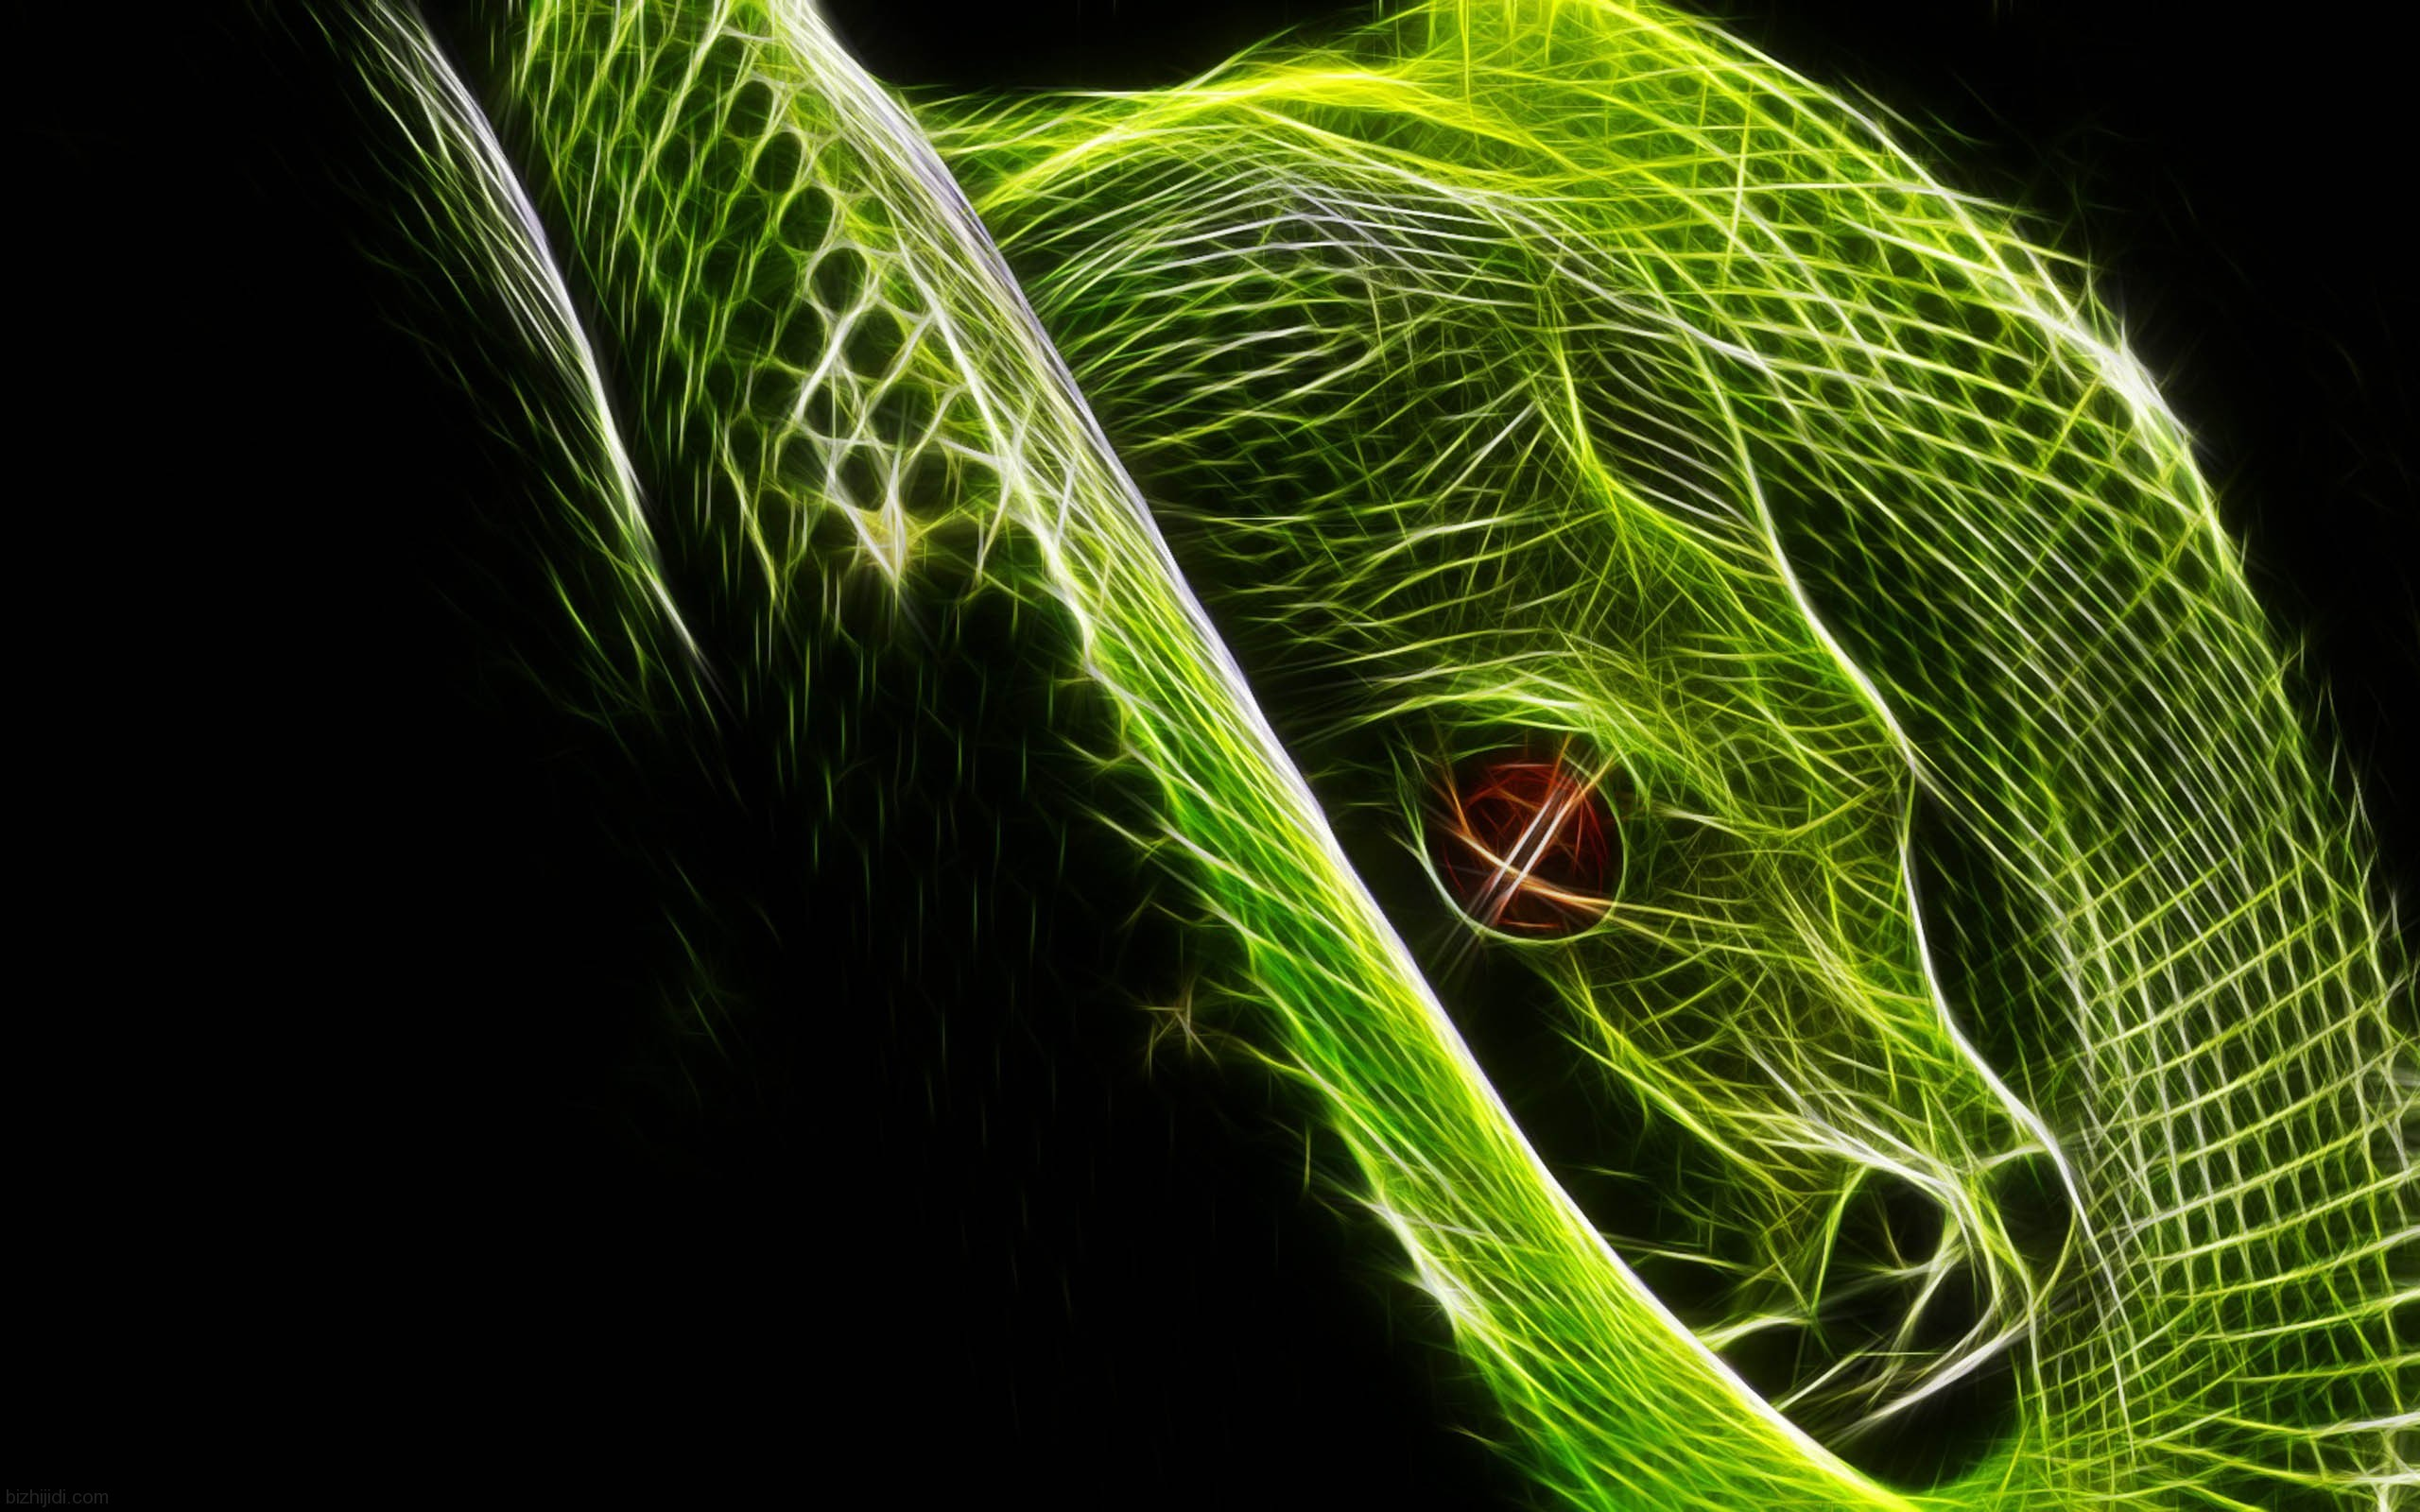 2560x1600 snakes images Snake HD wallpaper and background photos